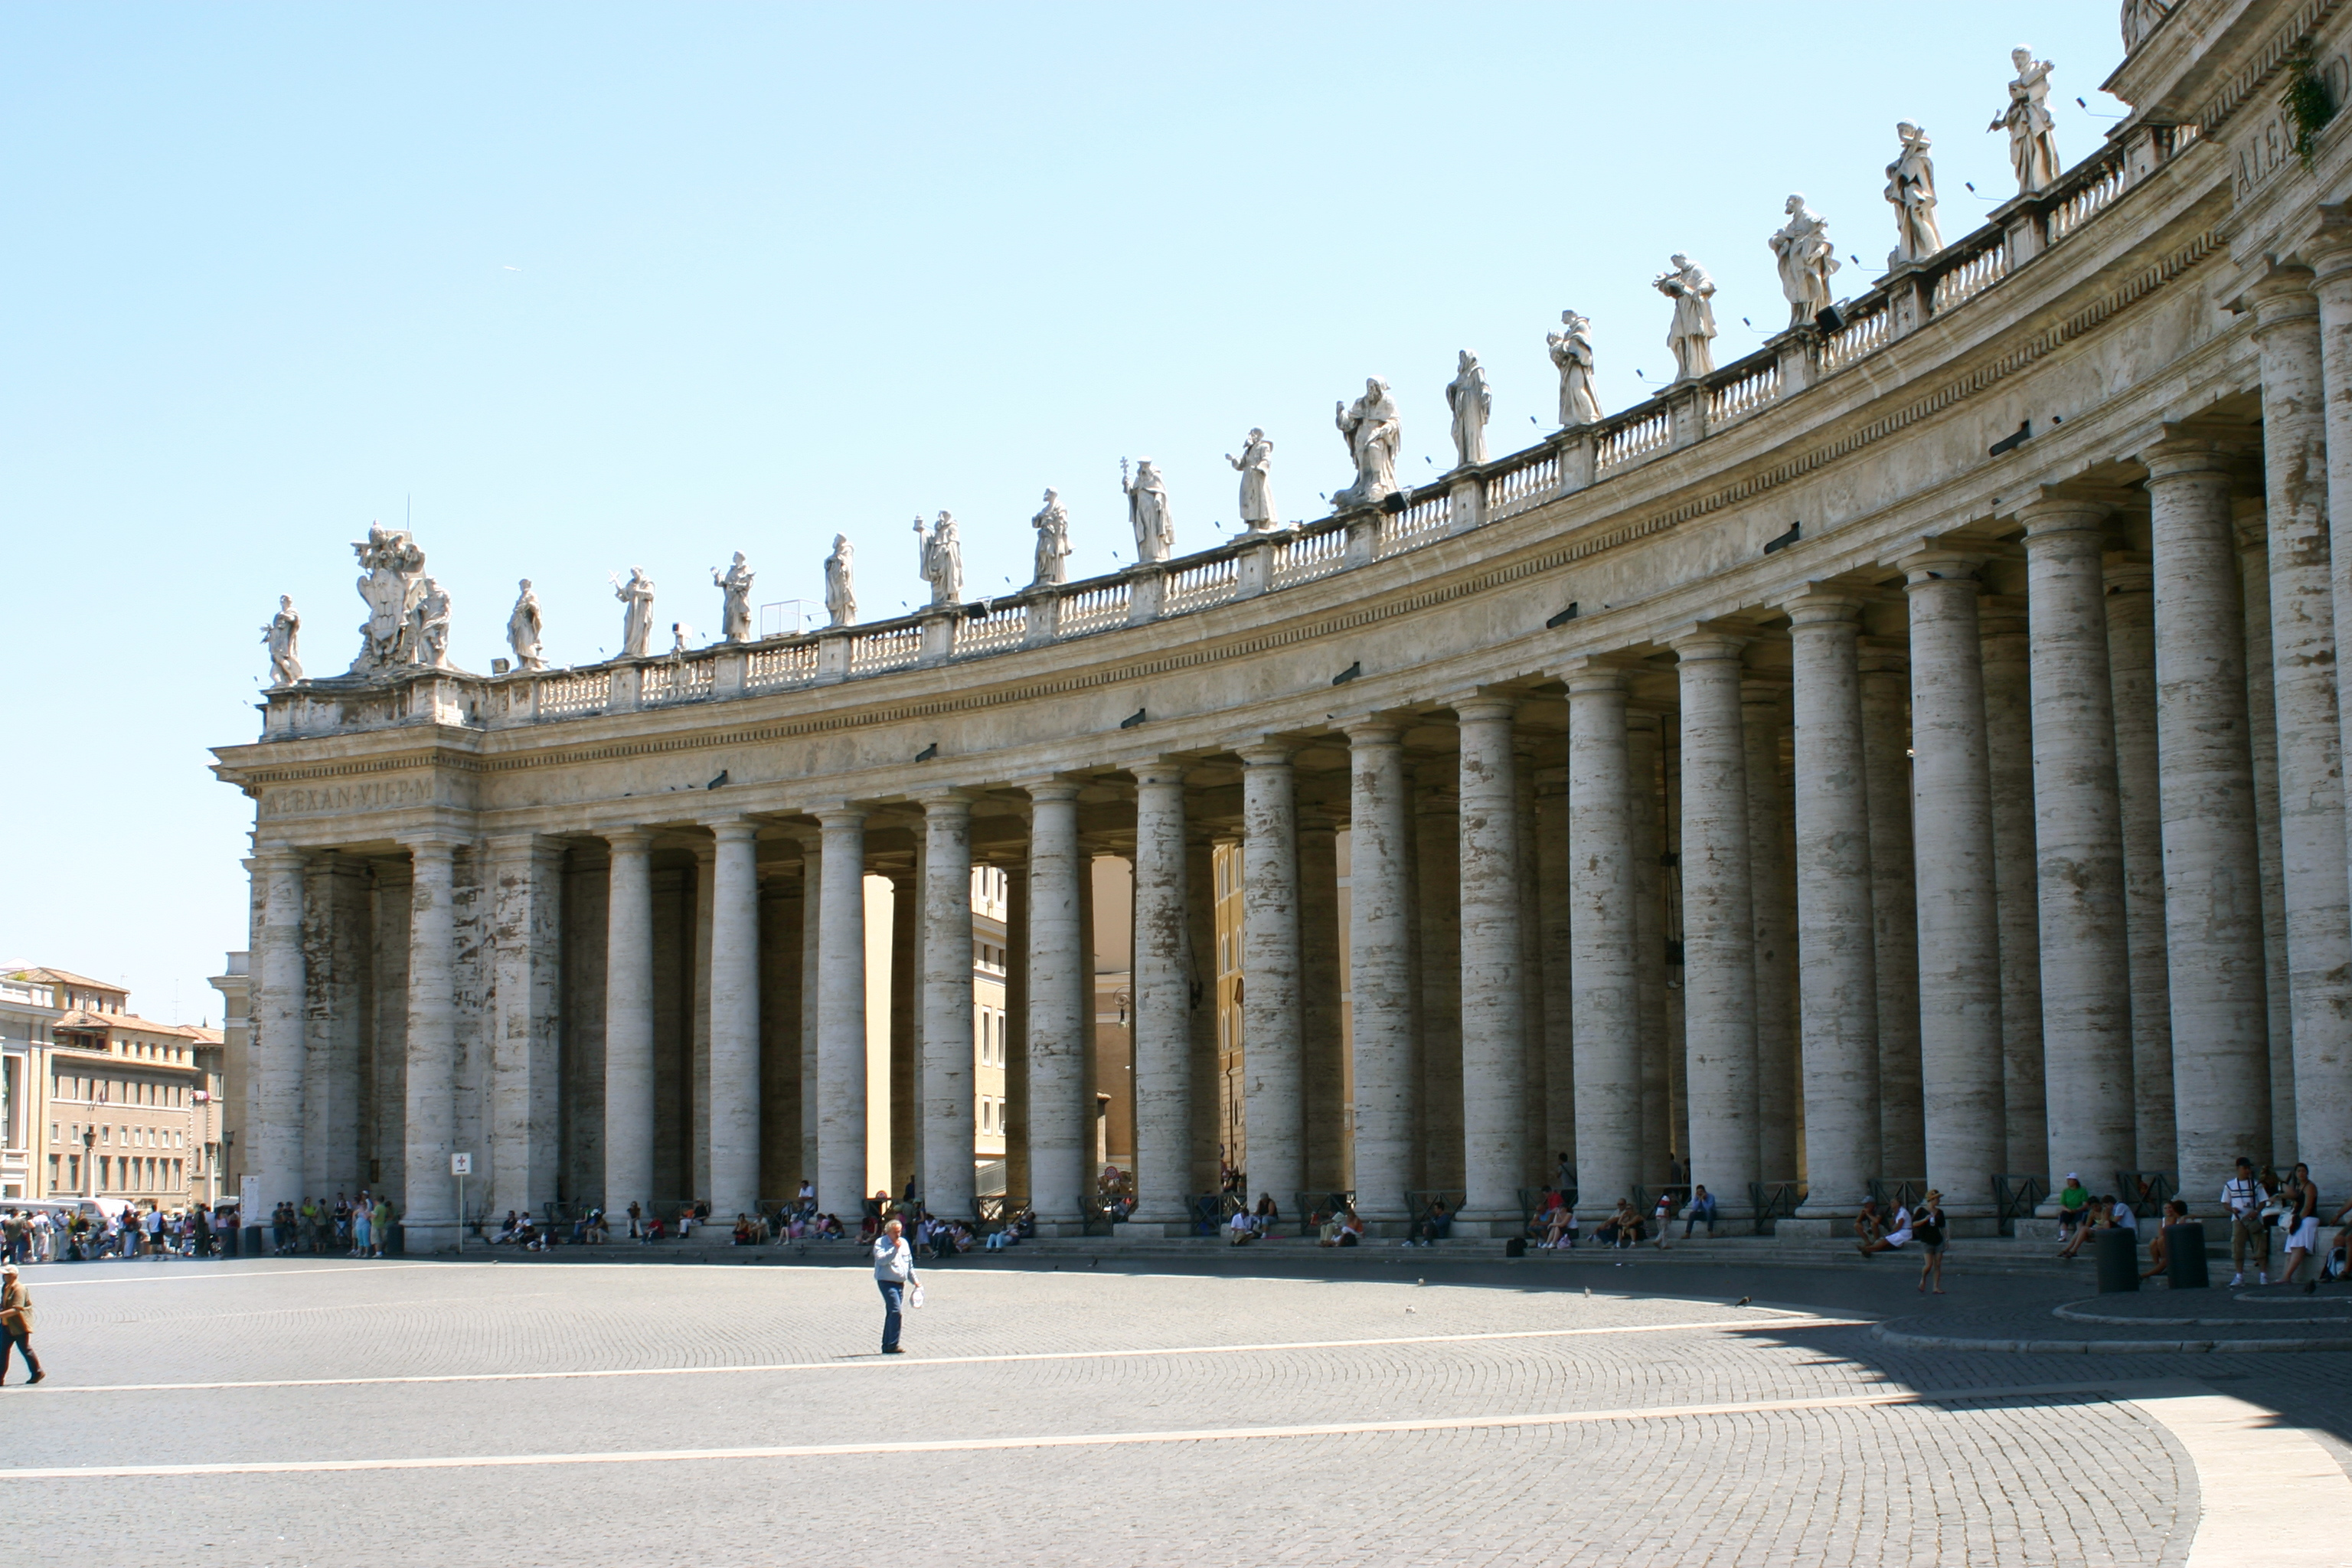 The Columns in the Vaitcan